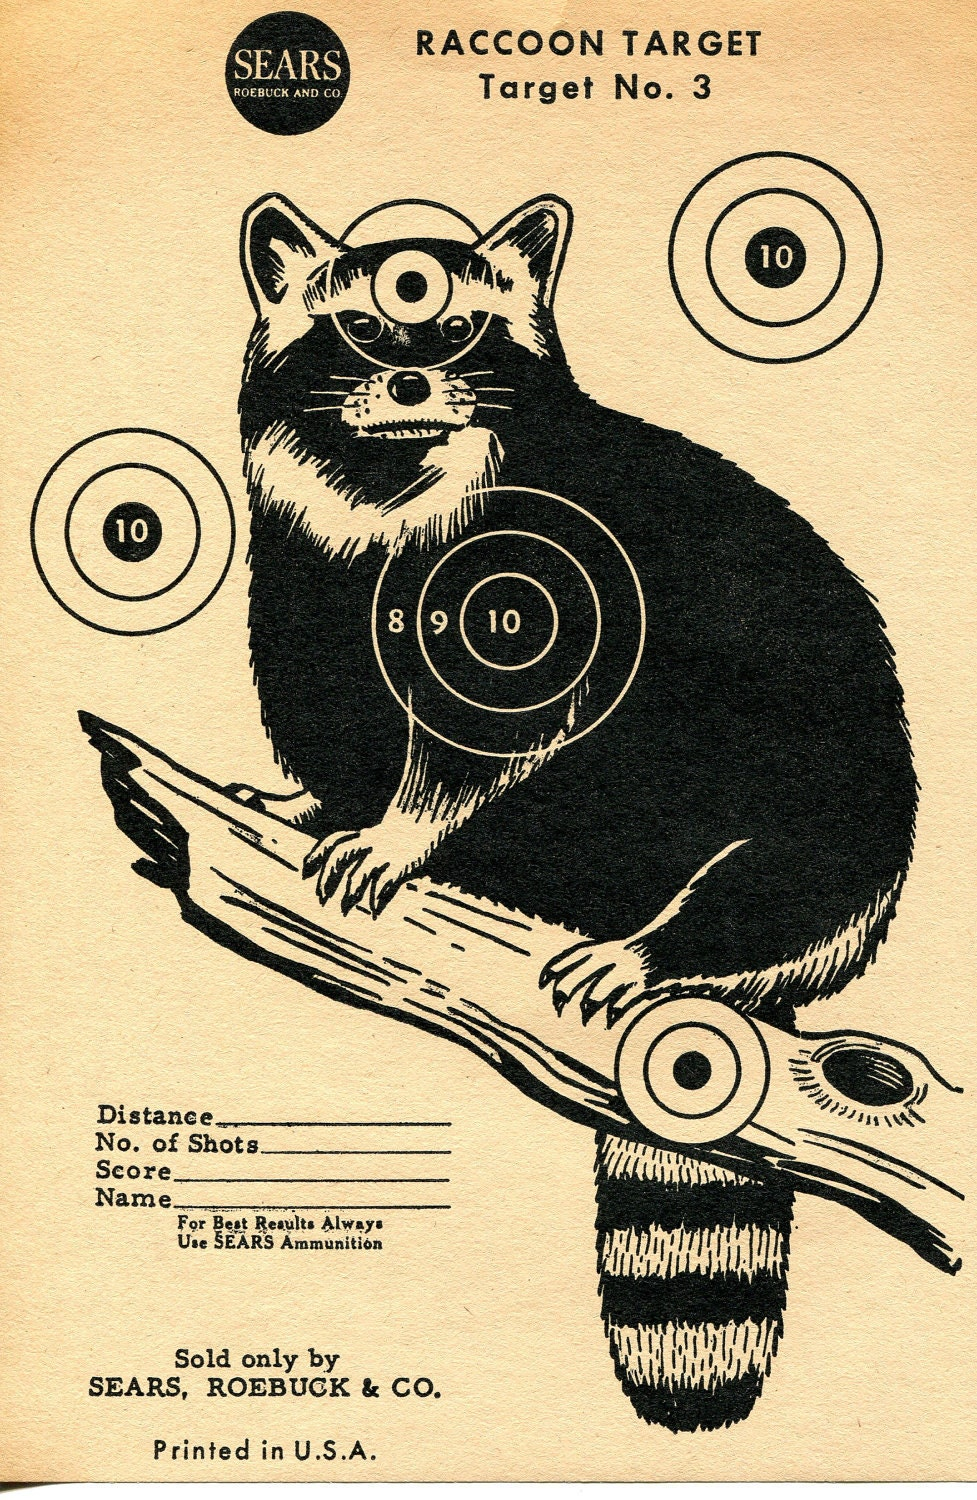 photograph about Squirrel Target Printable identified as Optimum Style and design Guidelines Printable Rat Plans Shots, And